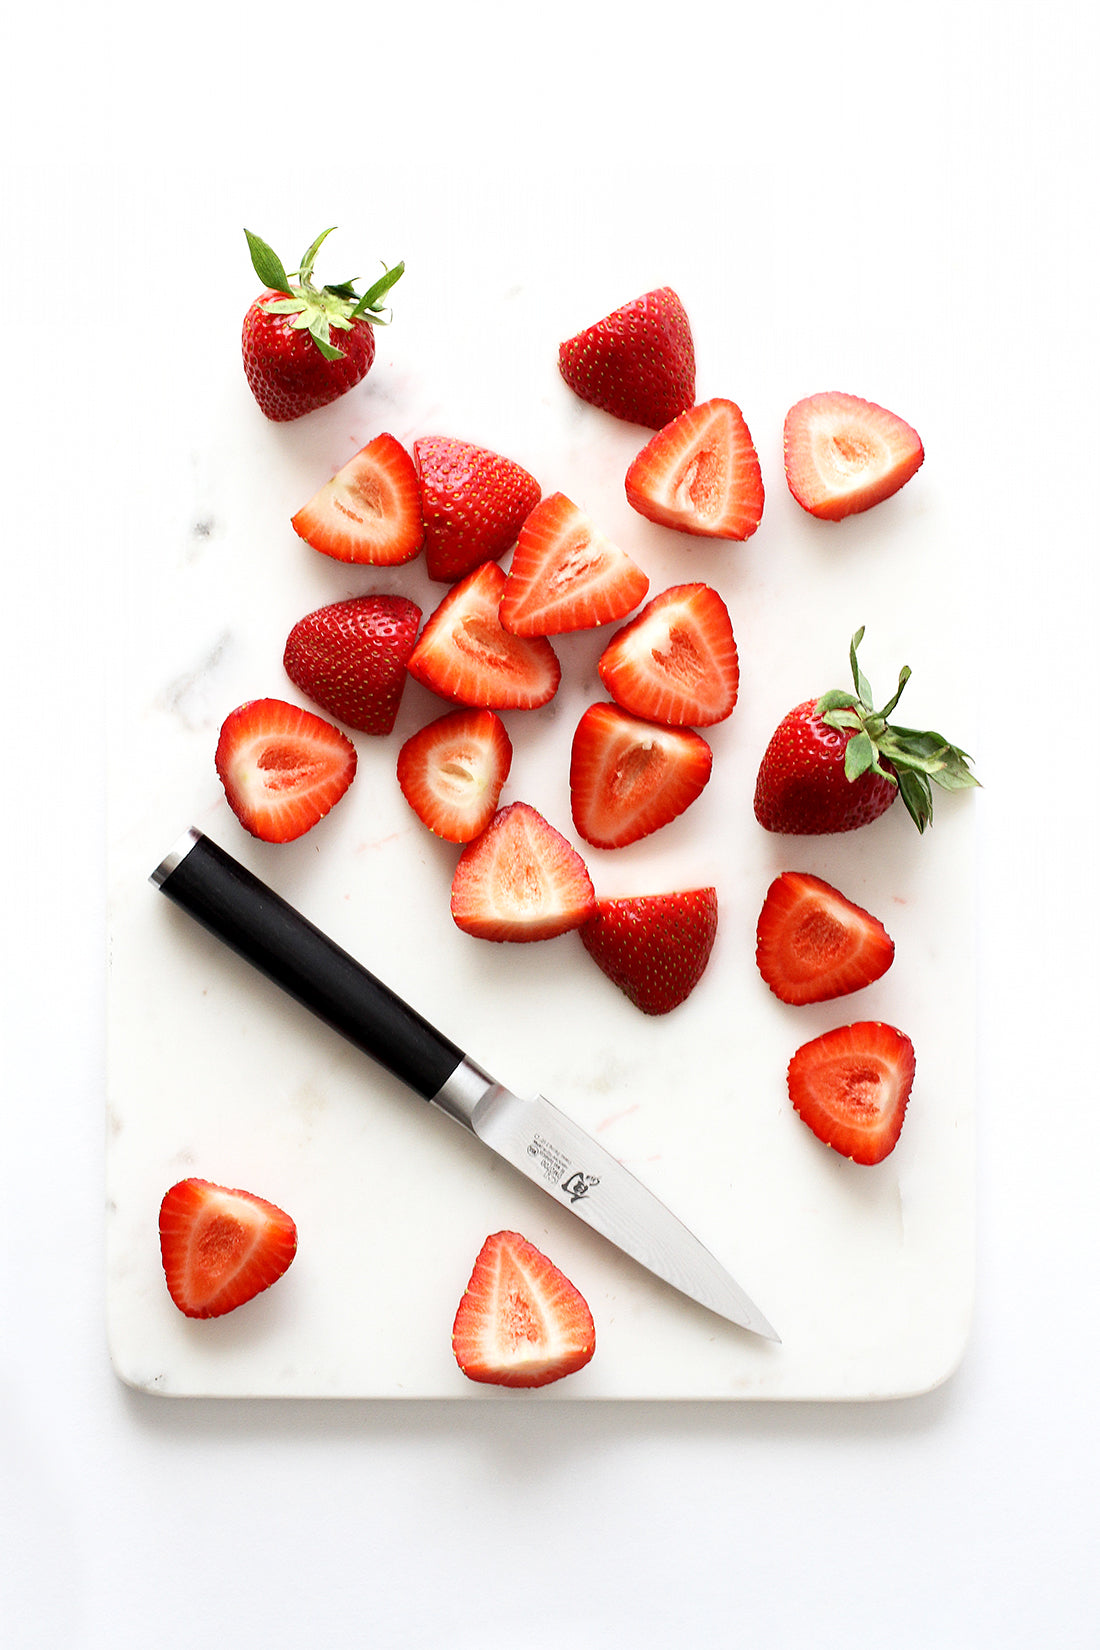 Image of strawberry halves on a cutting board used for Miss Jones Baking Co California Strawberry Cake